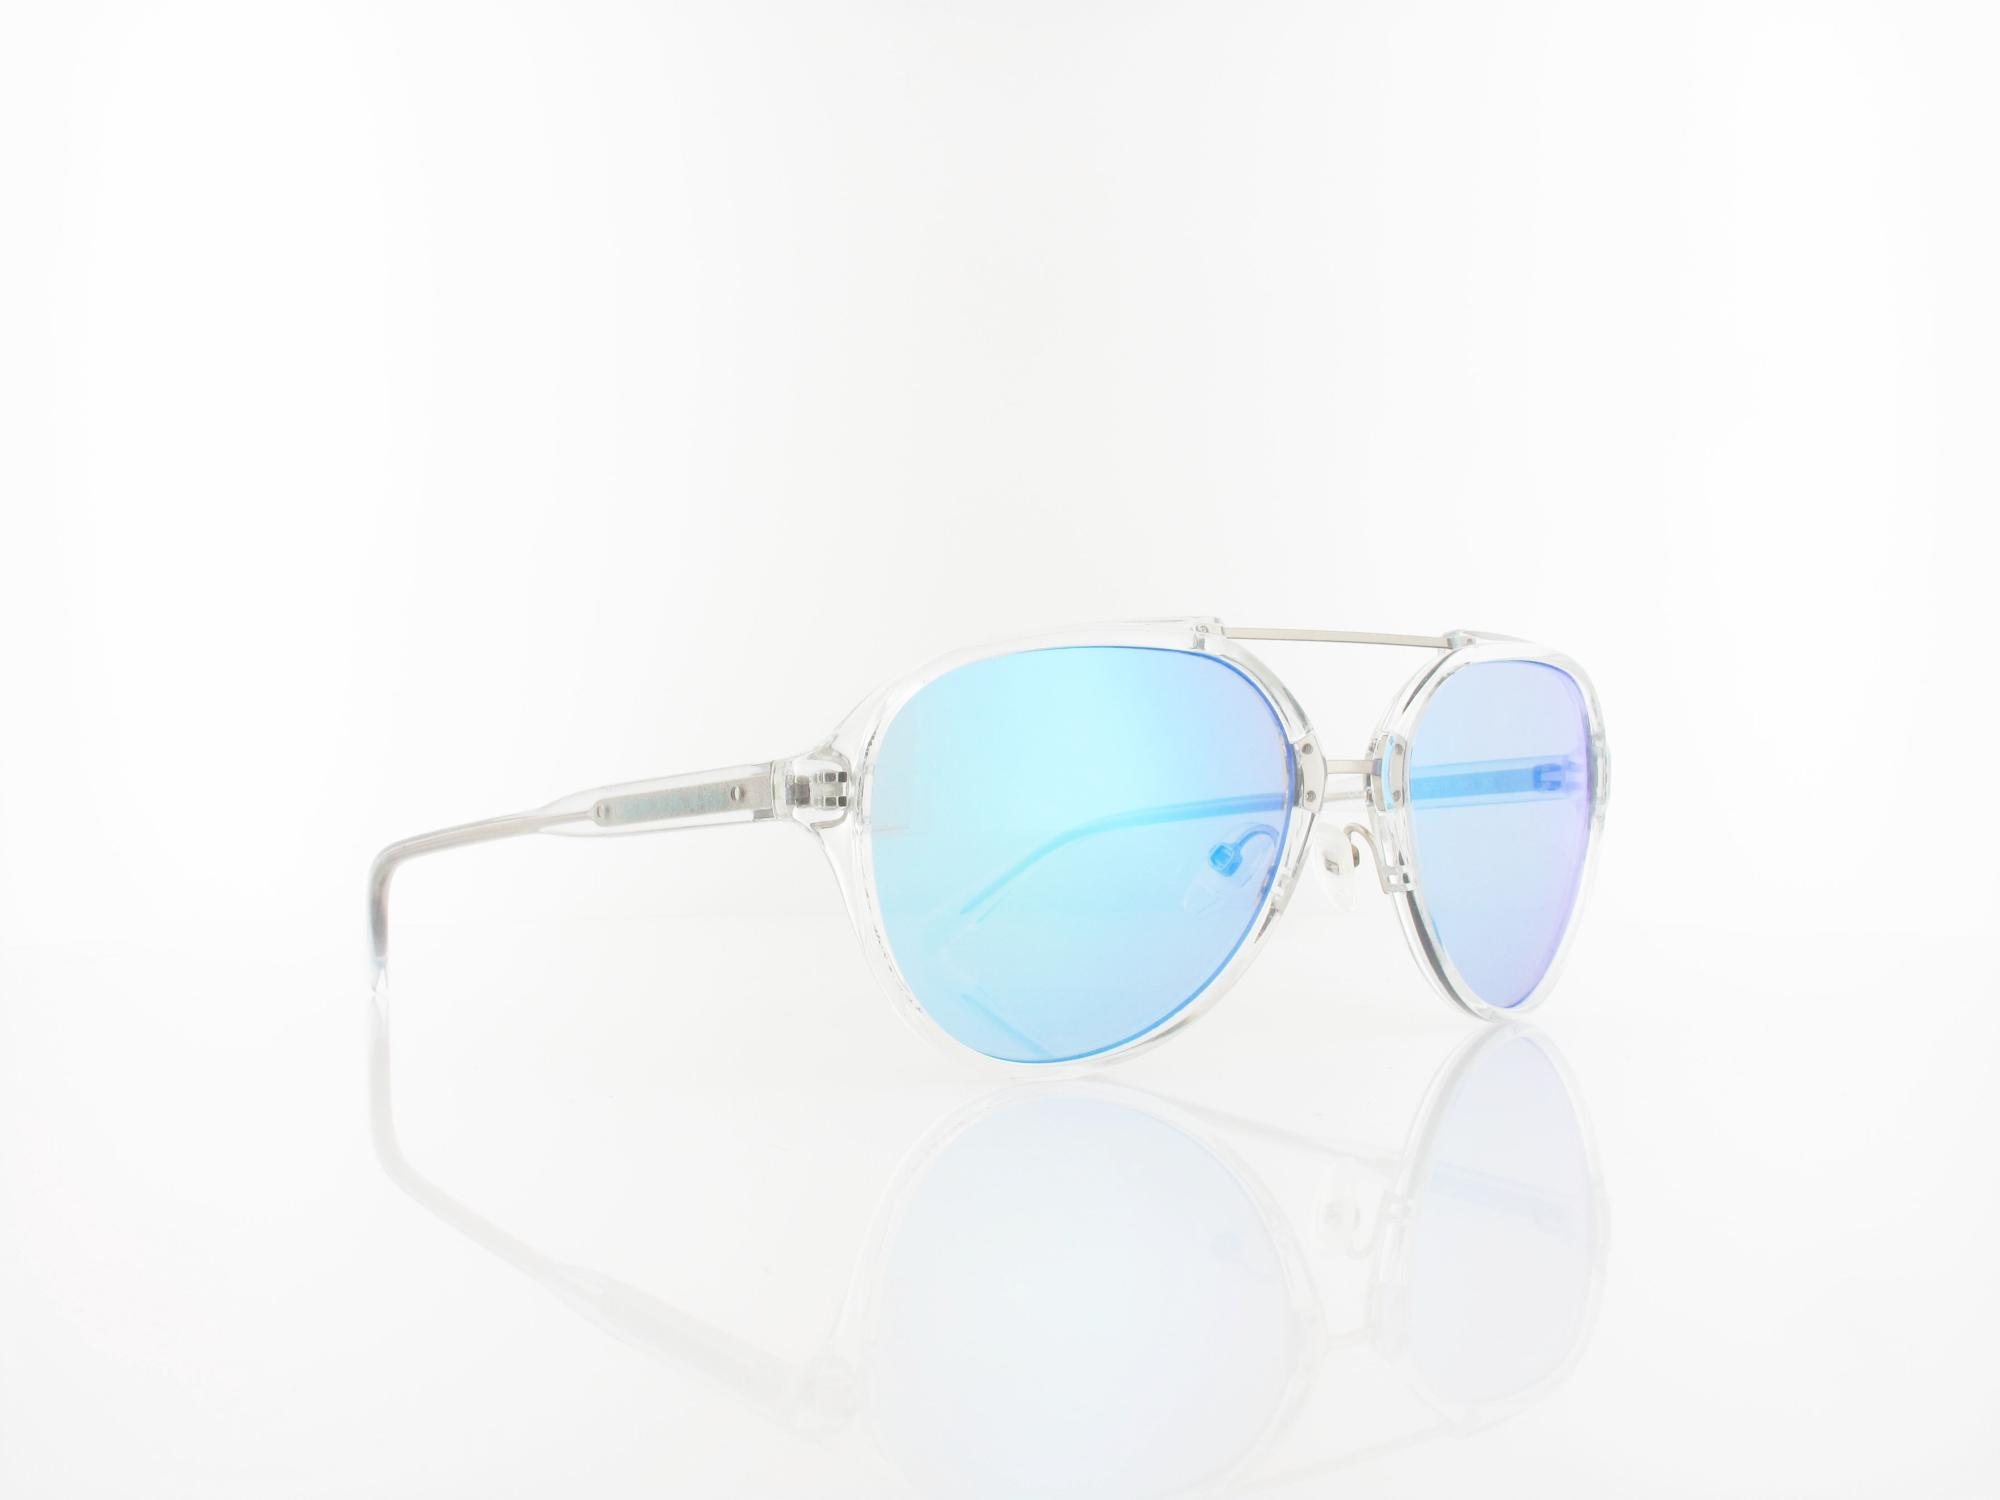 Calvin Klein | CKJ20502S 971 57 | crystal / yellow blue mirror